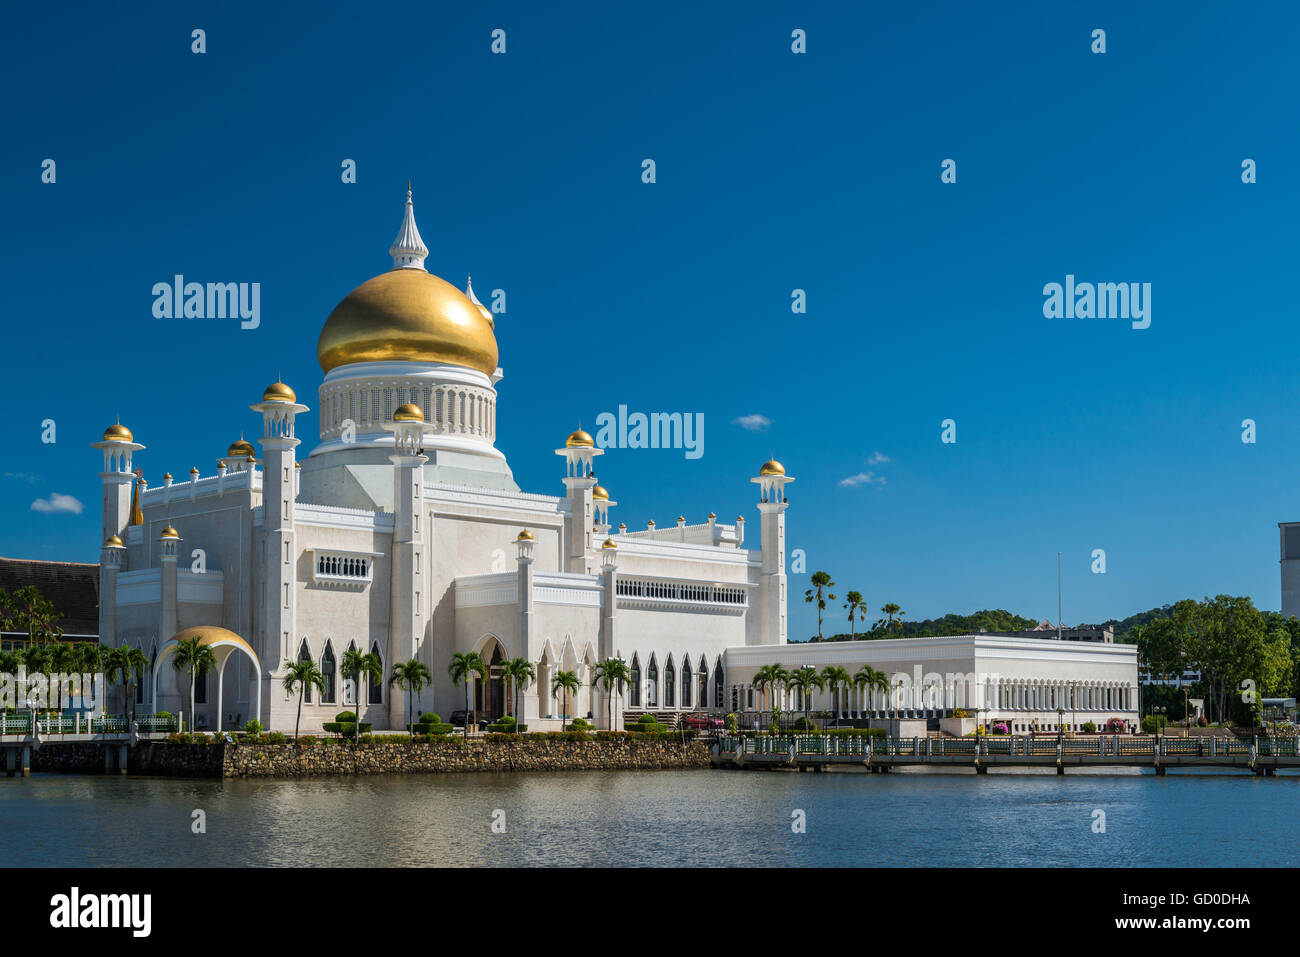 Late afternoon over Bandar Seri Begawan, Brunei, standing in the courtyard of the Sultan Omar Ali Saifuddin Mosque. - Stock Image